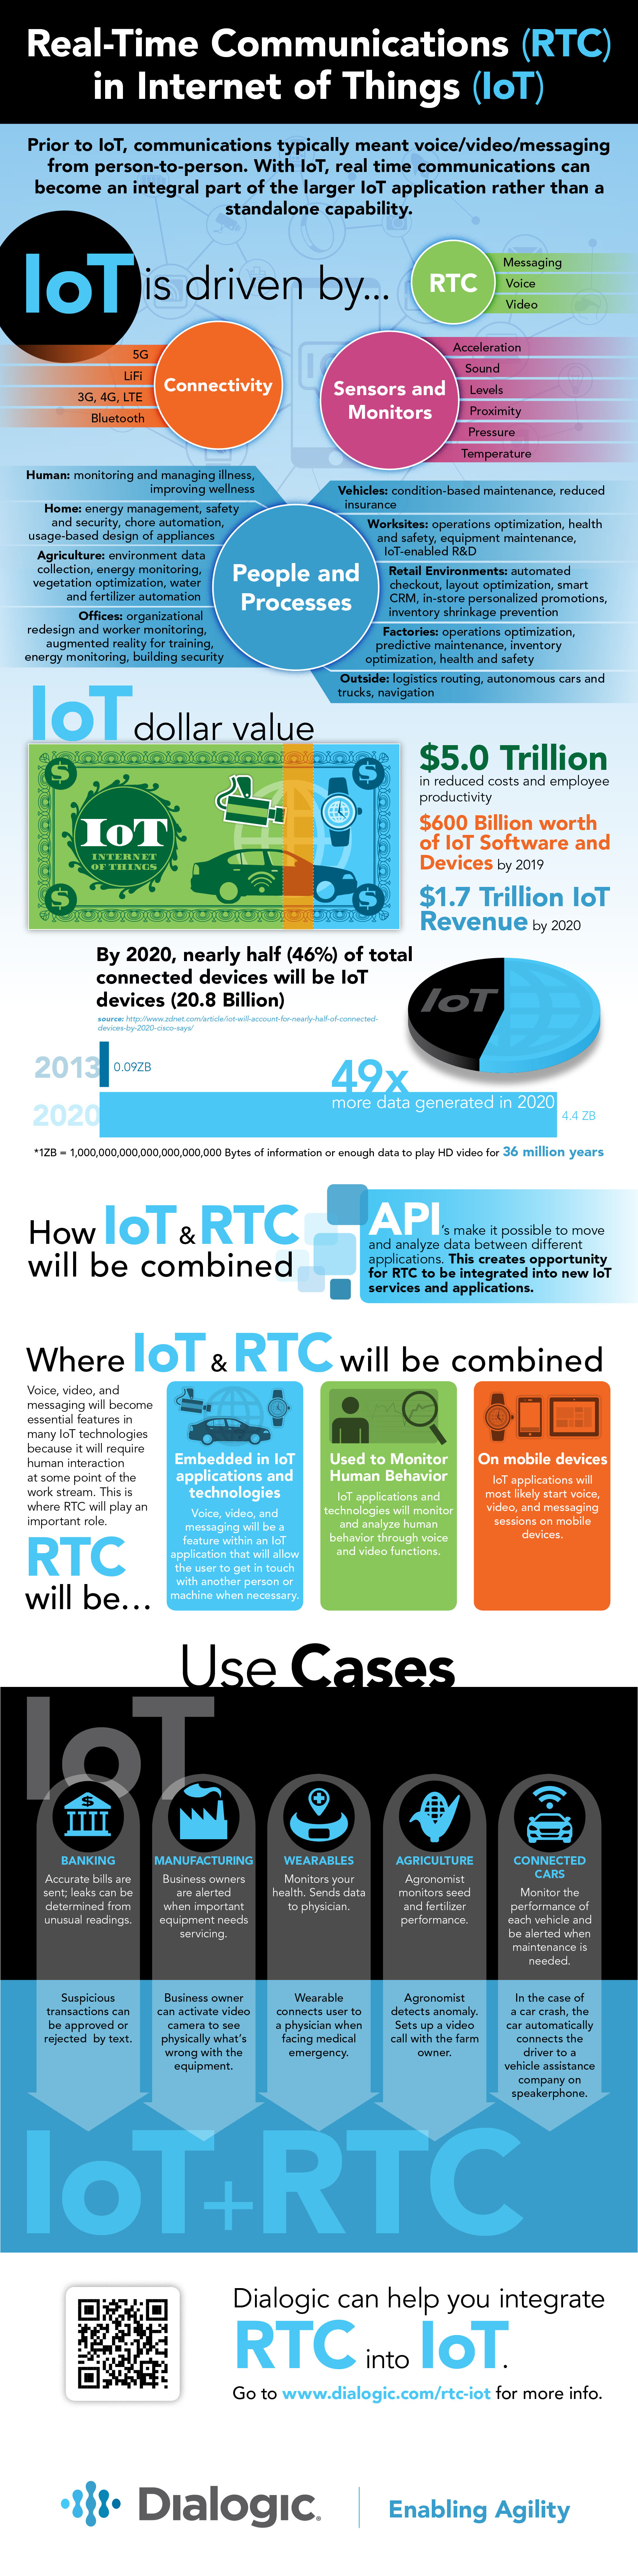 Internet of Things and Real-time Communications Infographic